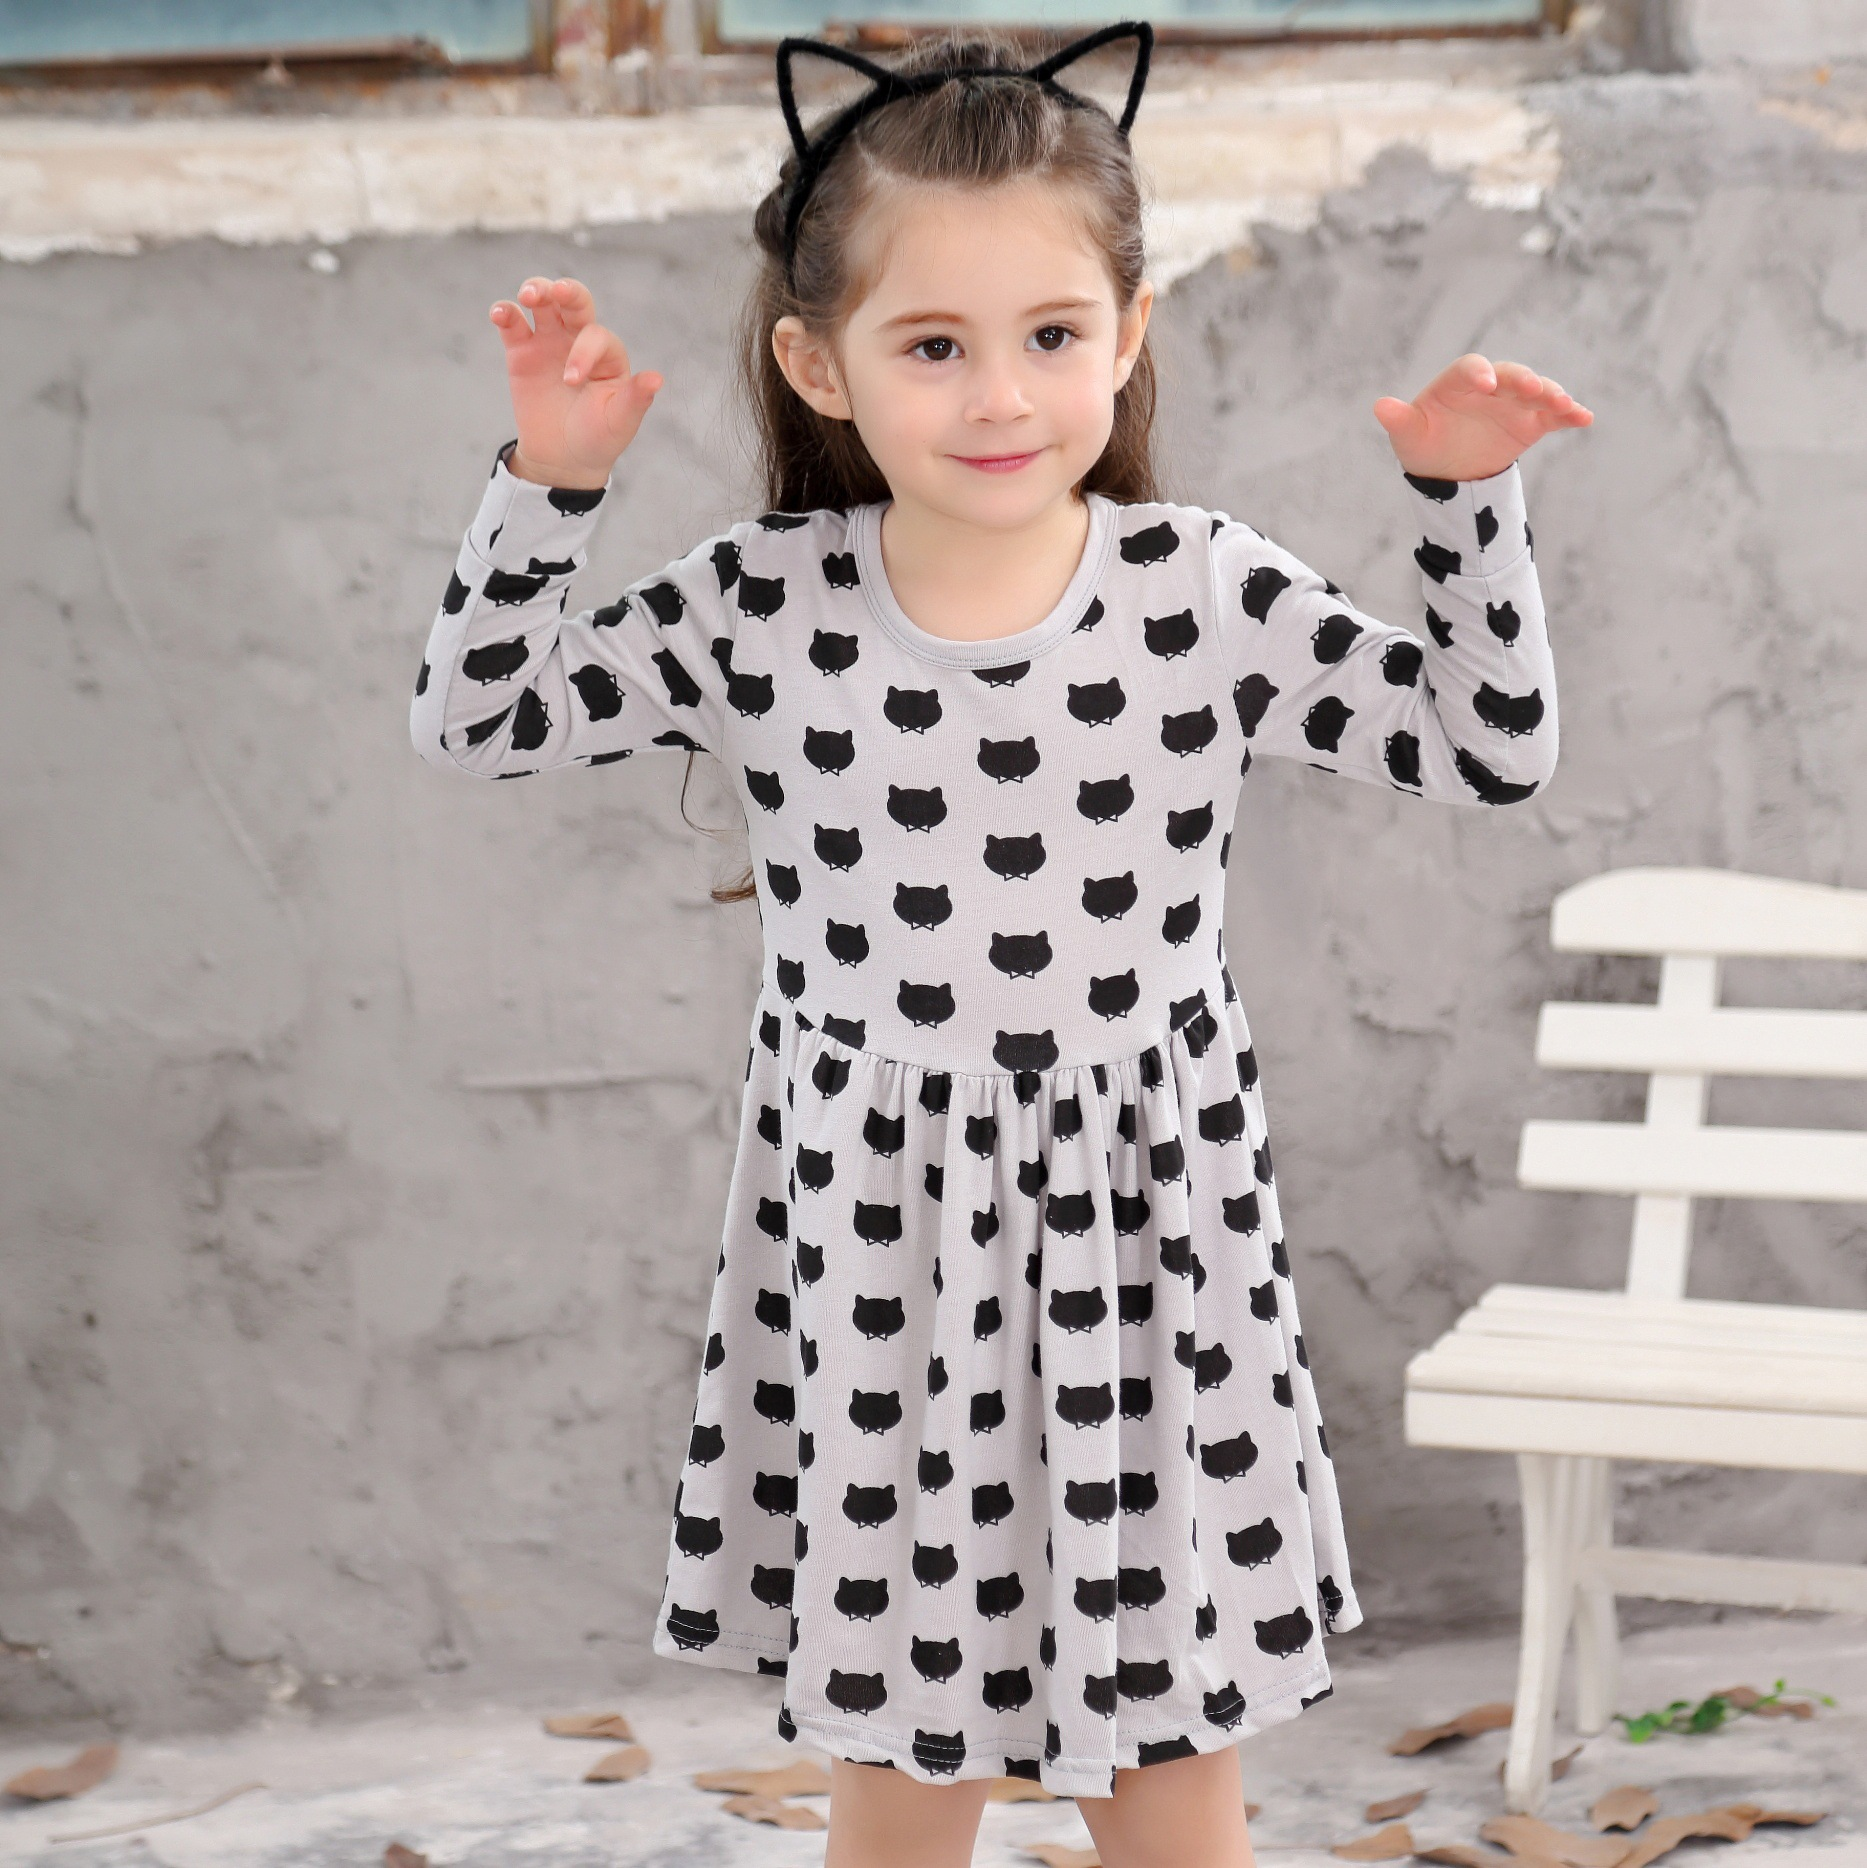 Chinese children s clothing black cat pattern printing wave point